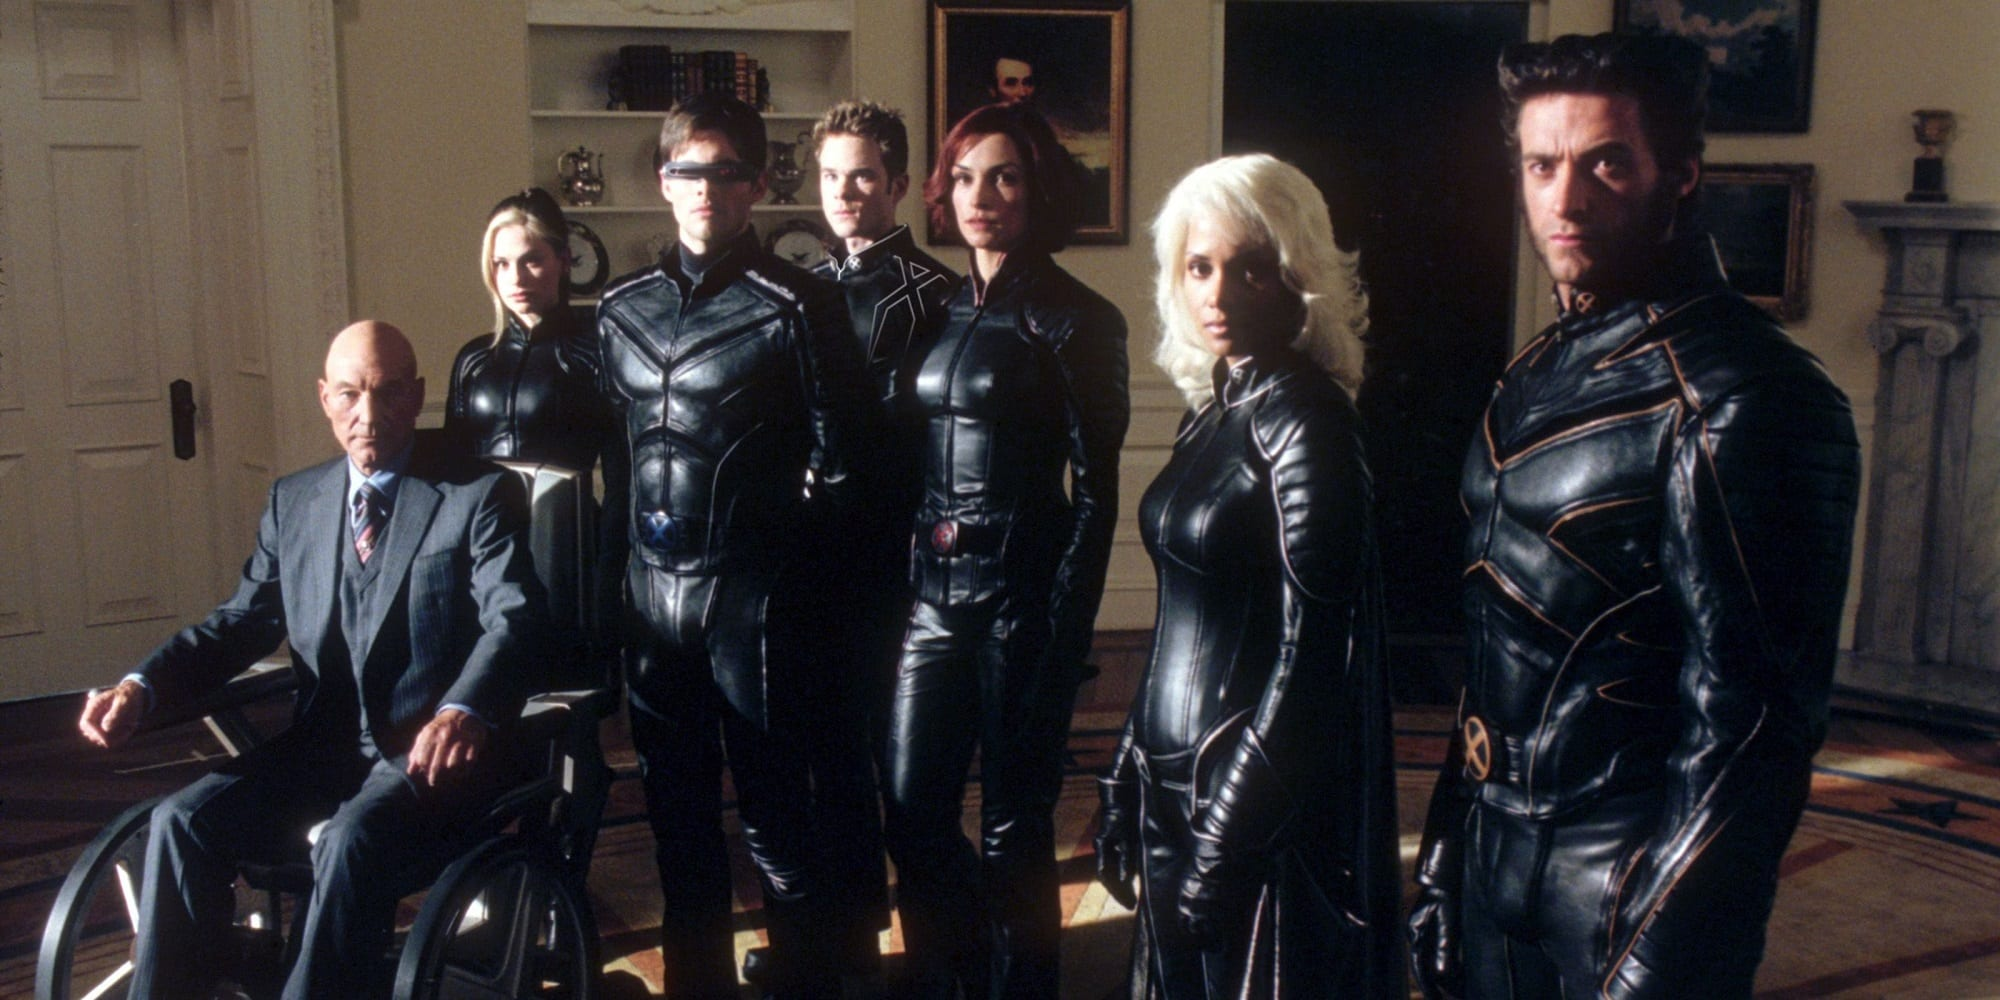 20th anniversary X-Men Hugh Jackman Wolverine Patrick Stewart Professor X Halle Berry Storm James Marsden Cyclops Anna Paquin Rogue Iceman Shawn Ashmore